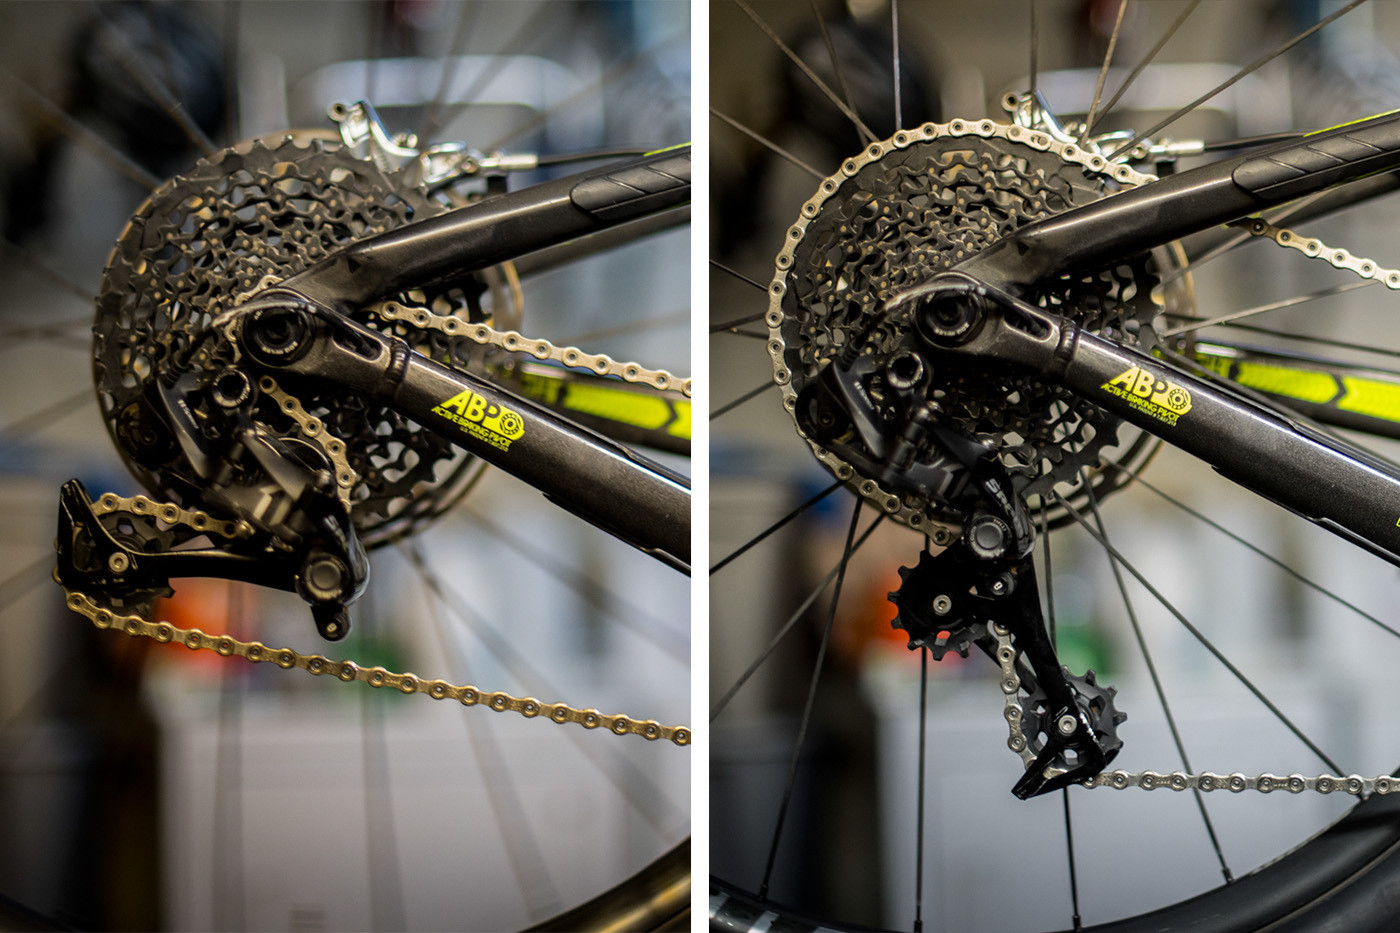 From the Workbench: General Drivetrain Maintenance - Mountain Bikes